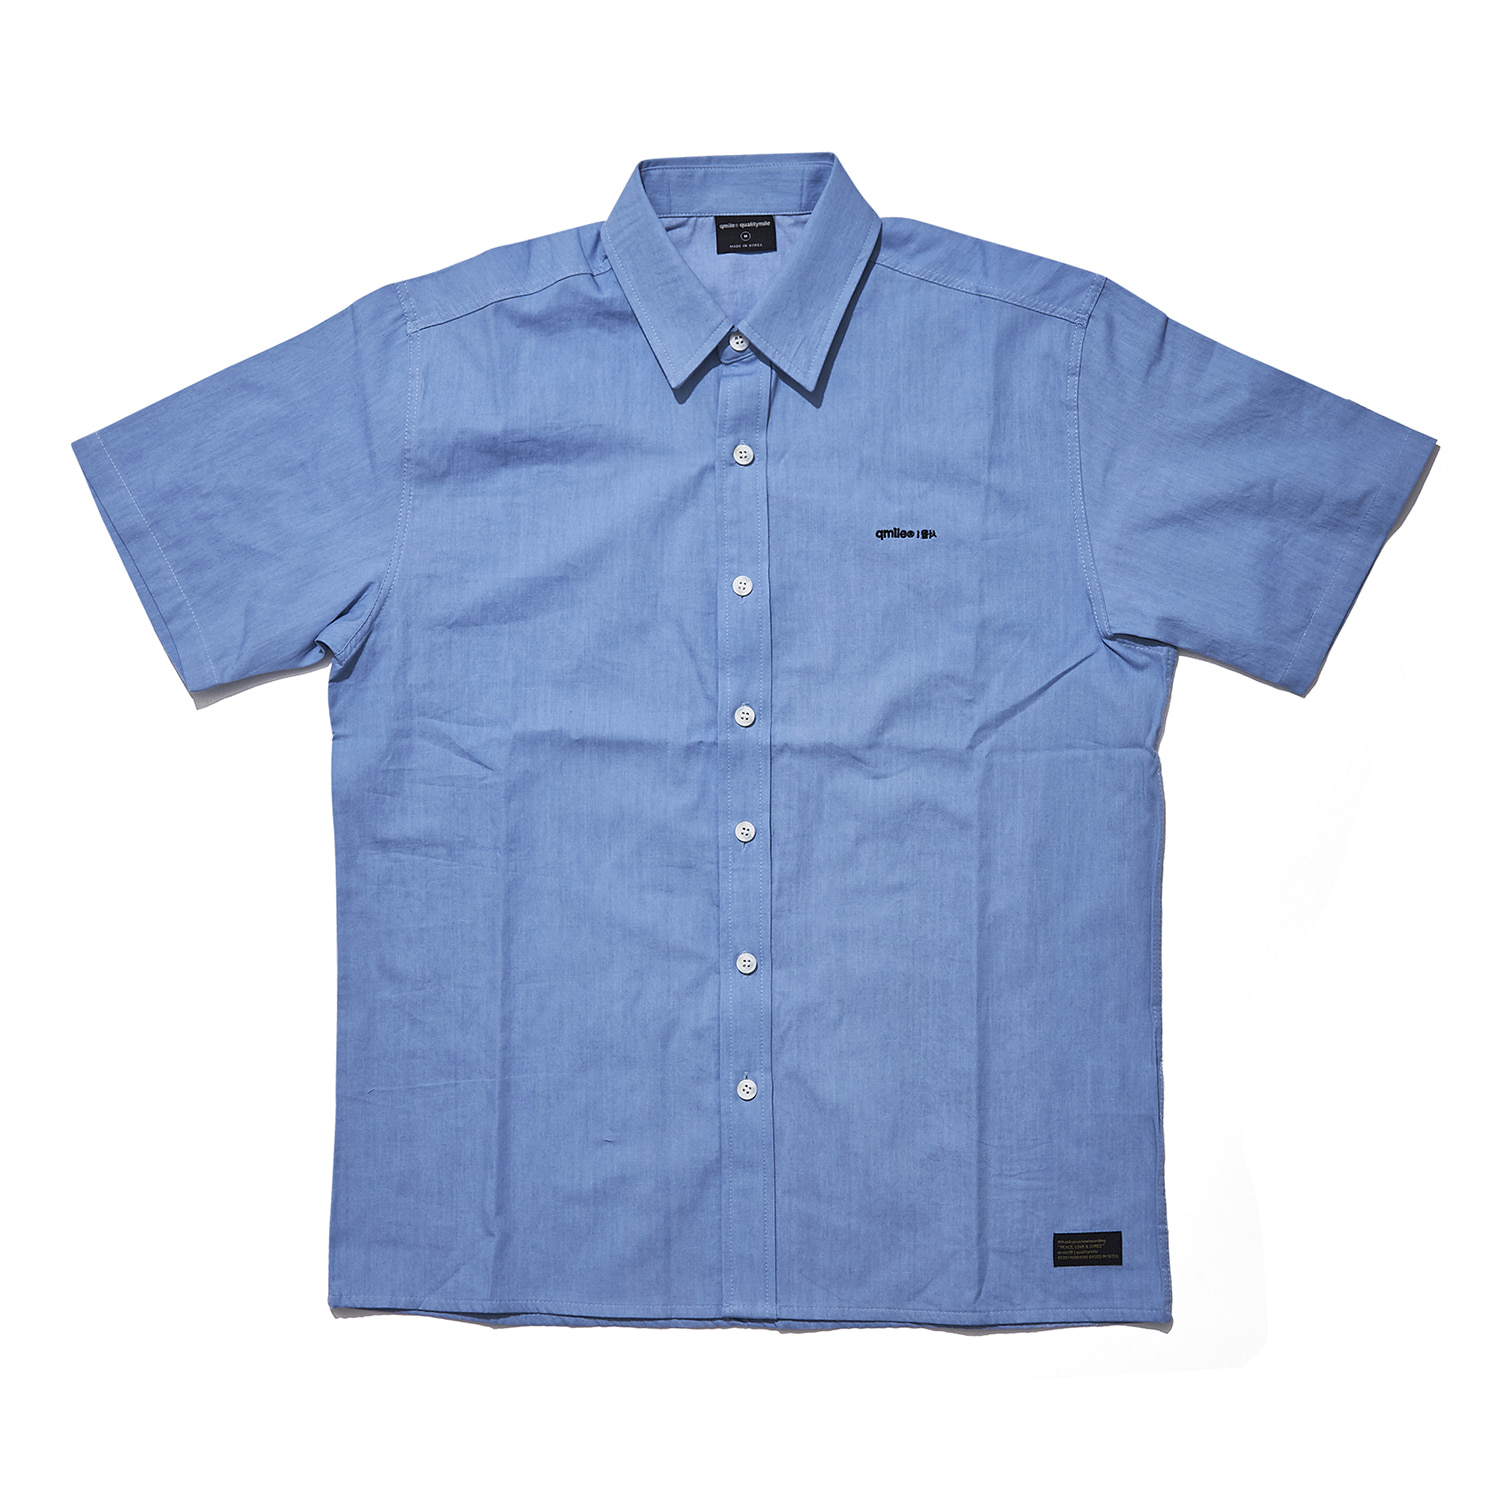 NB02 (nambang) short sleeve light denim